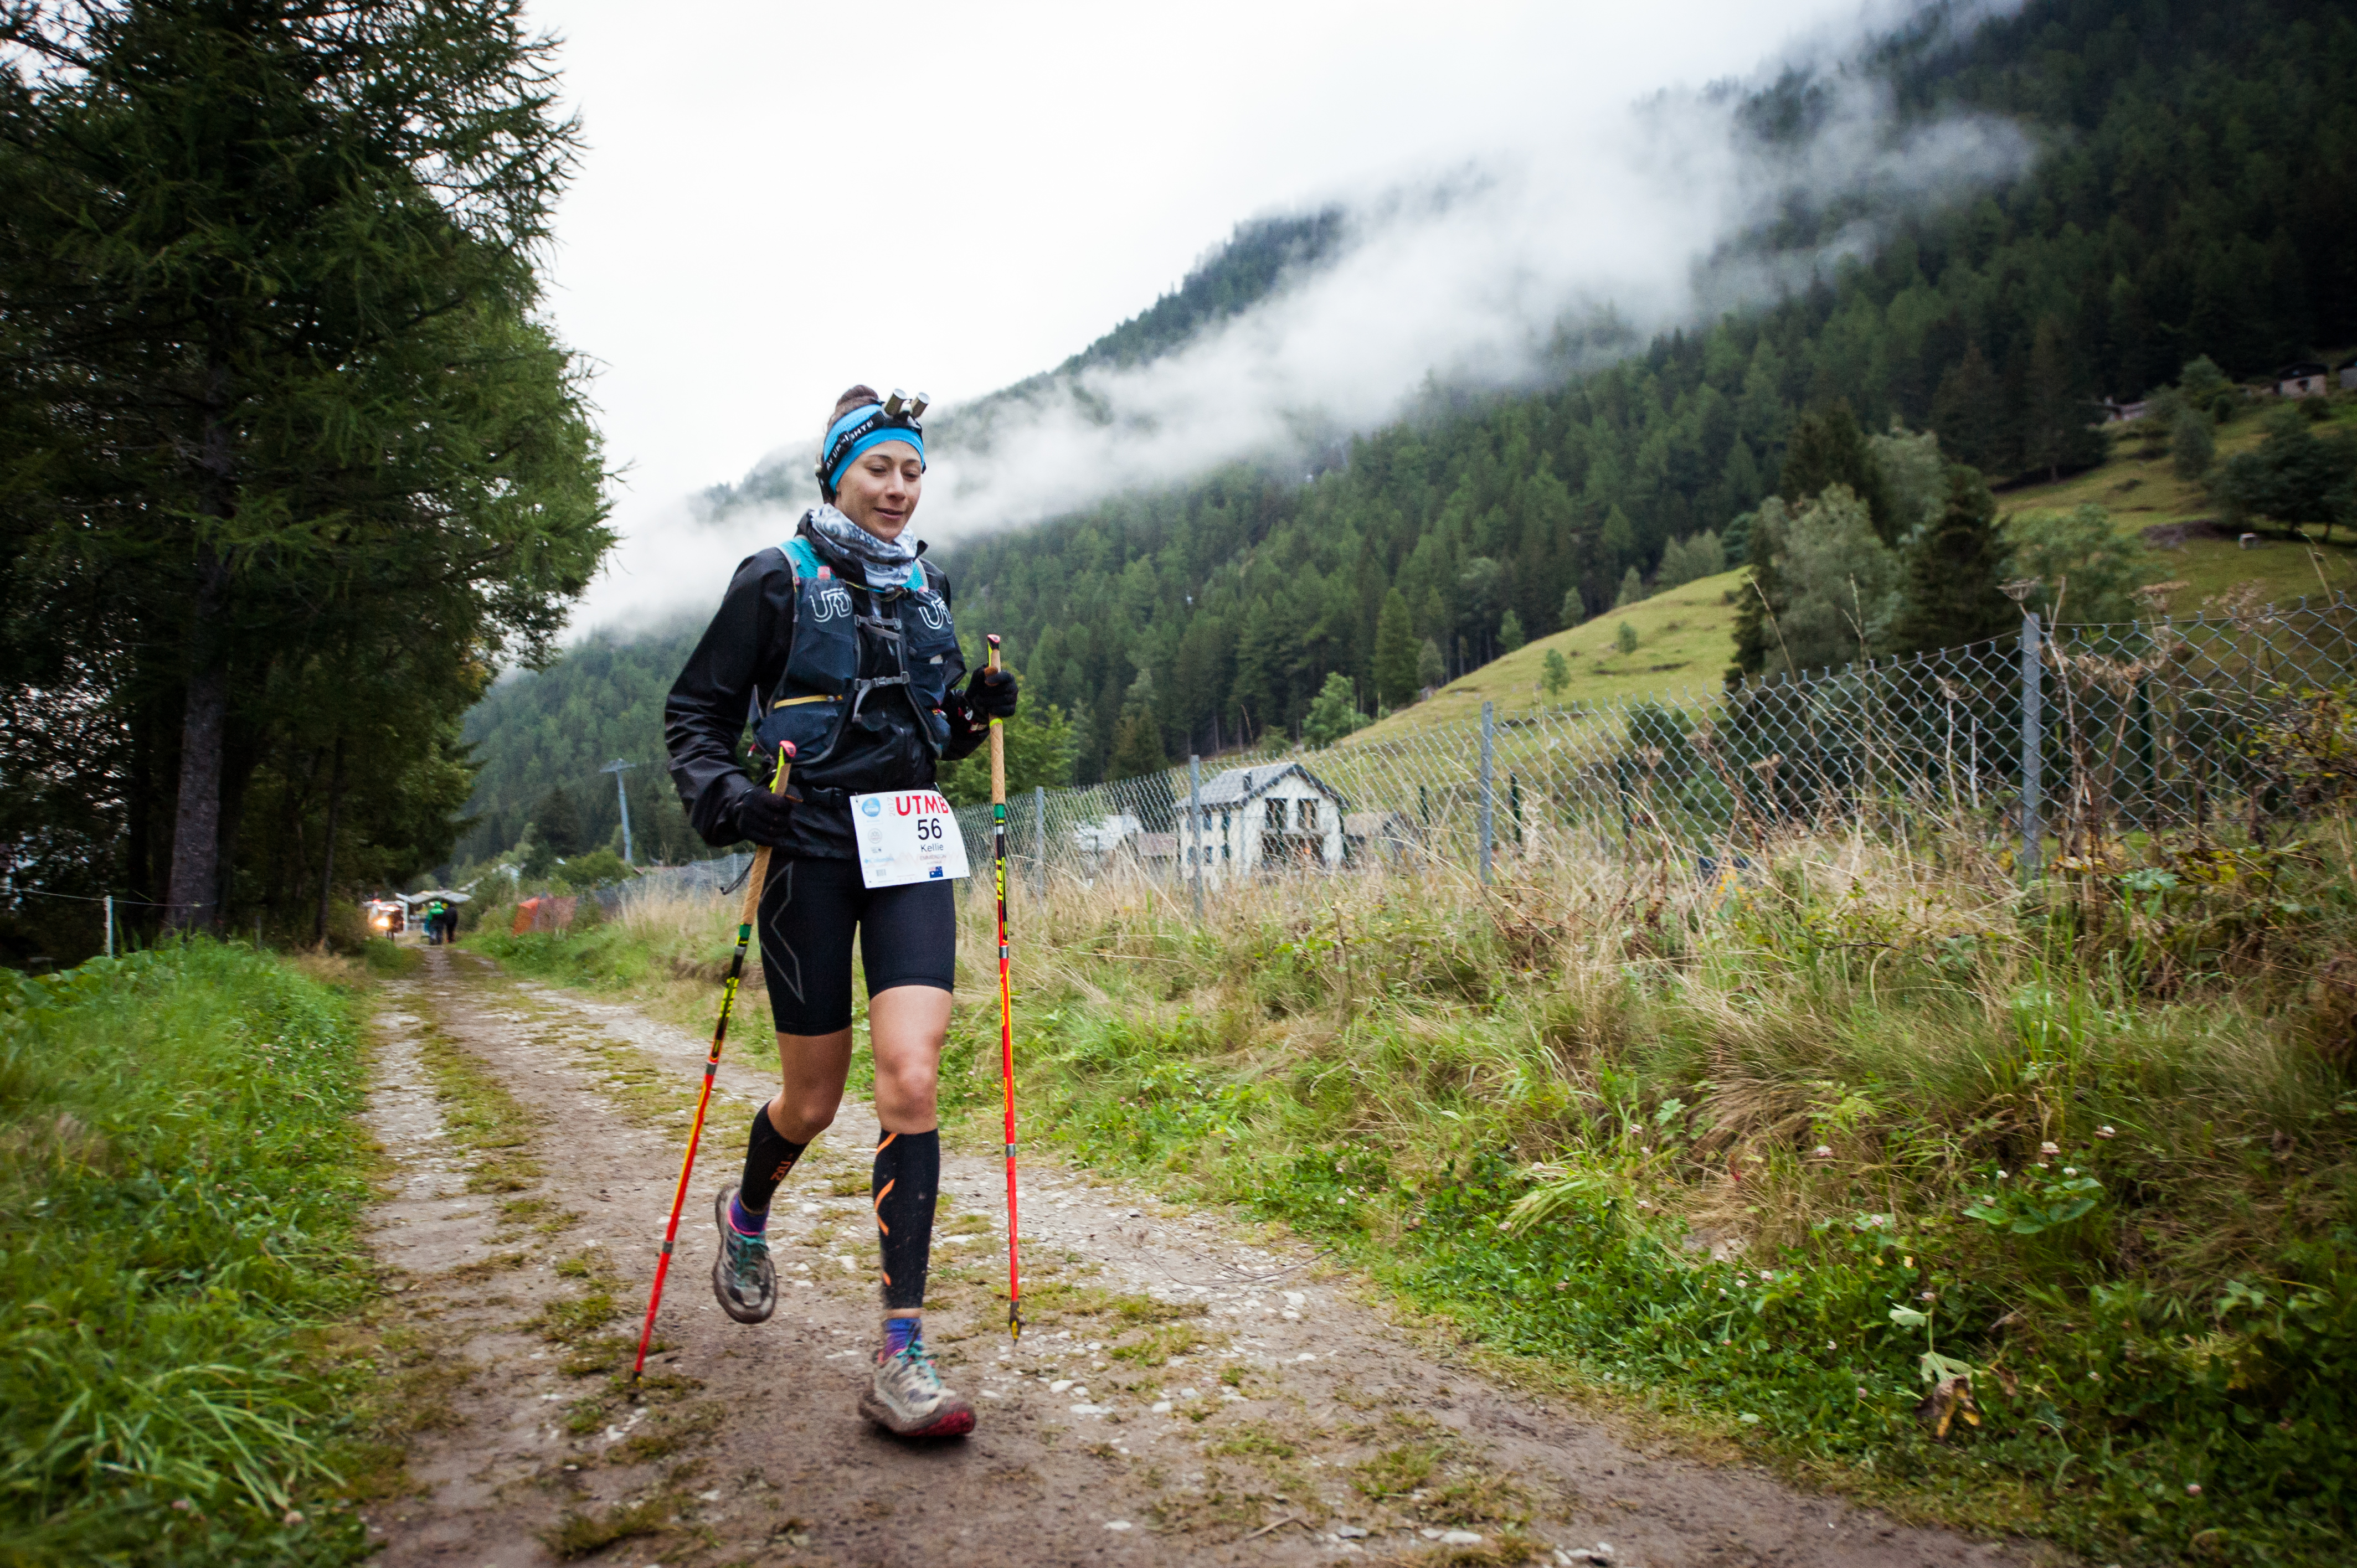 Emmerson's sprint to UTMB finish